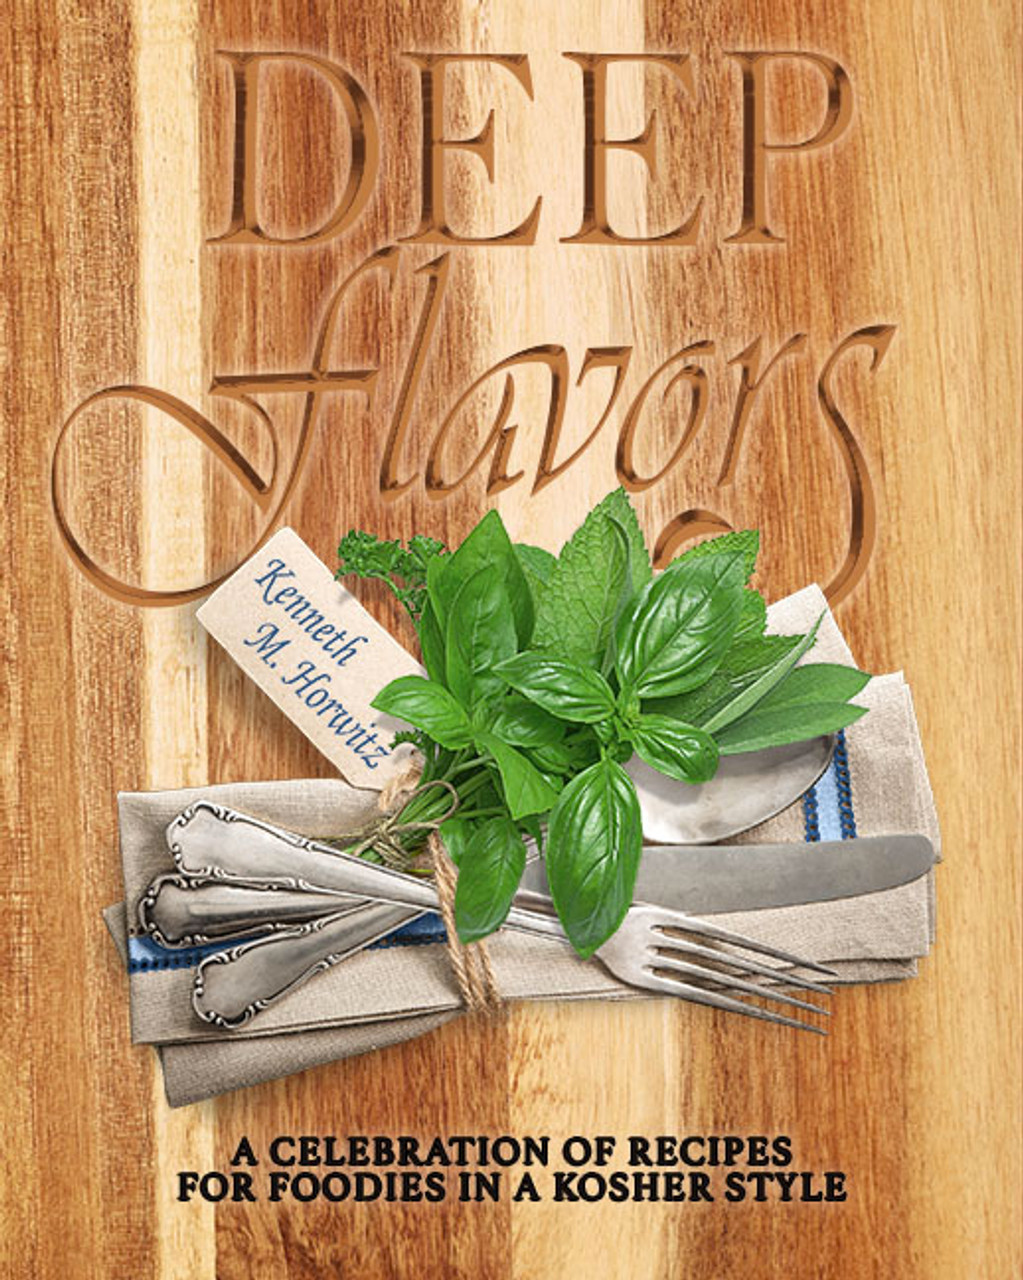 Deep Flavors: A Celebration of Recipes for Foodies in a Kosher Style